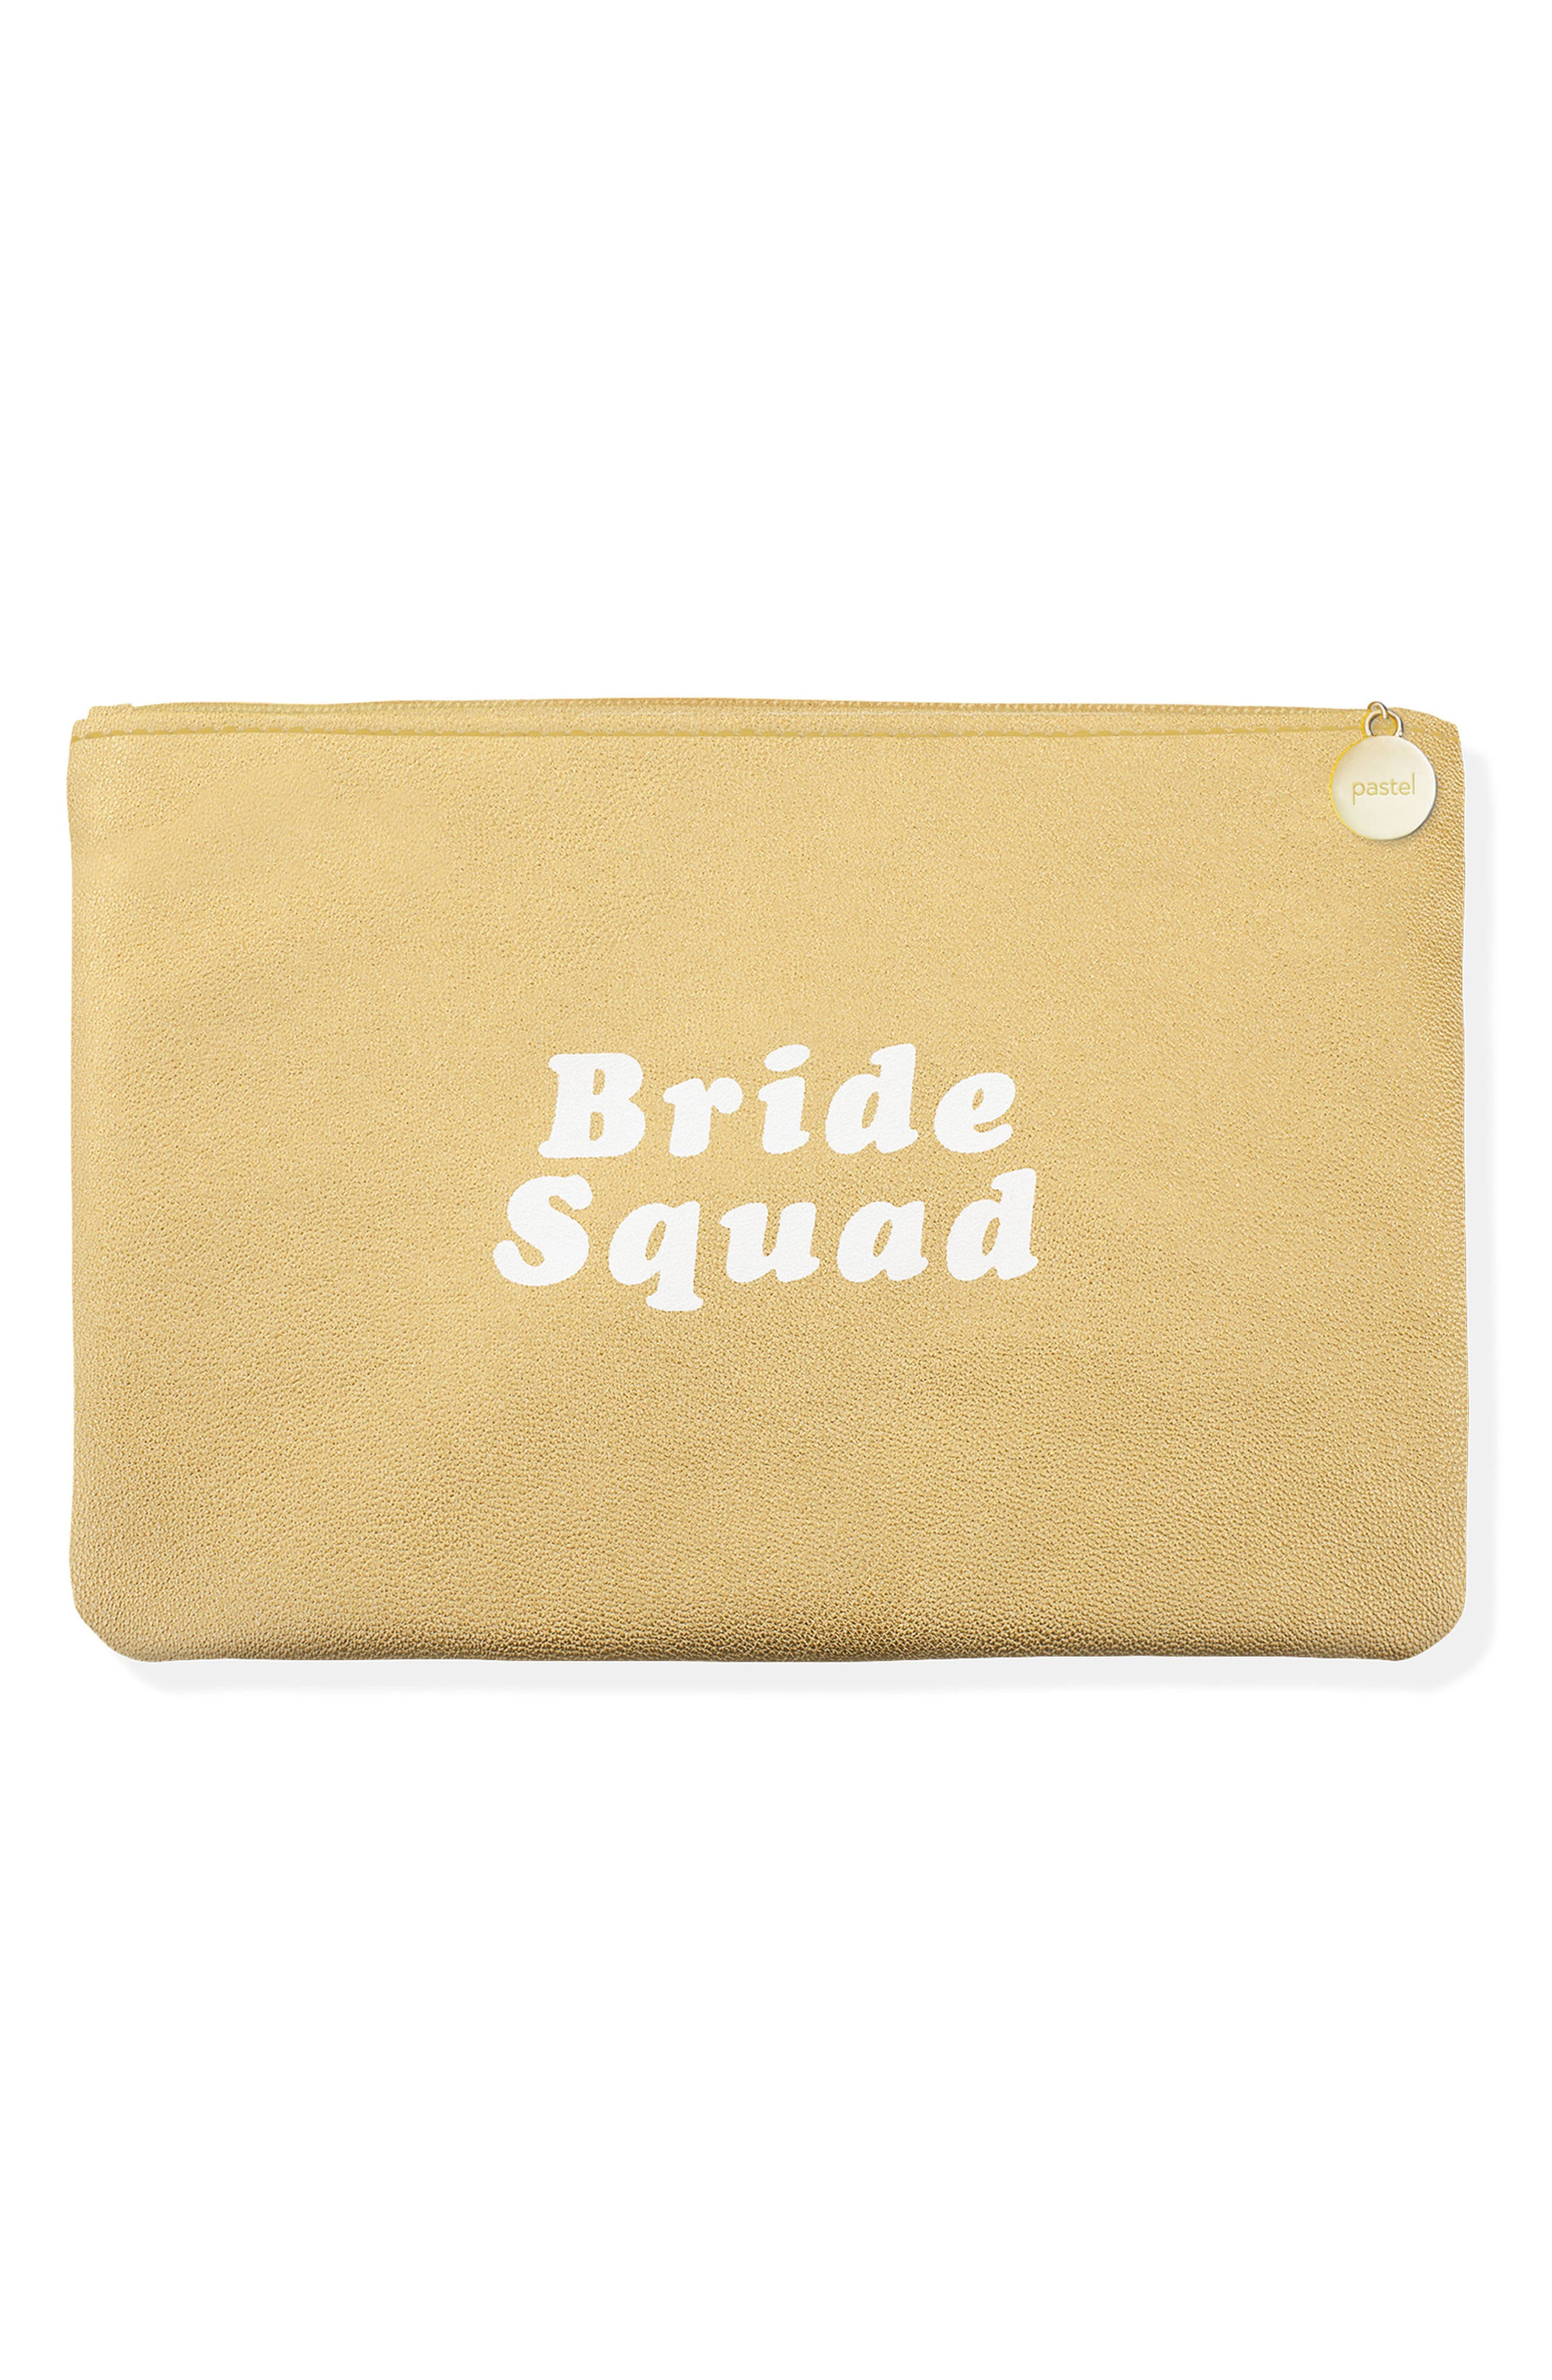 Bride Squad Zip Pouch,                         Main,                         color, 710